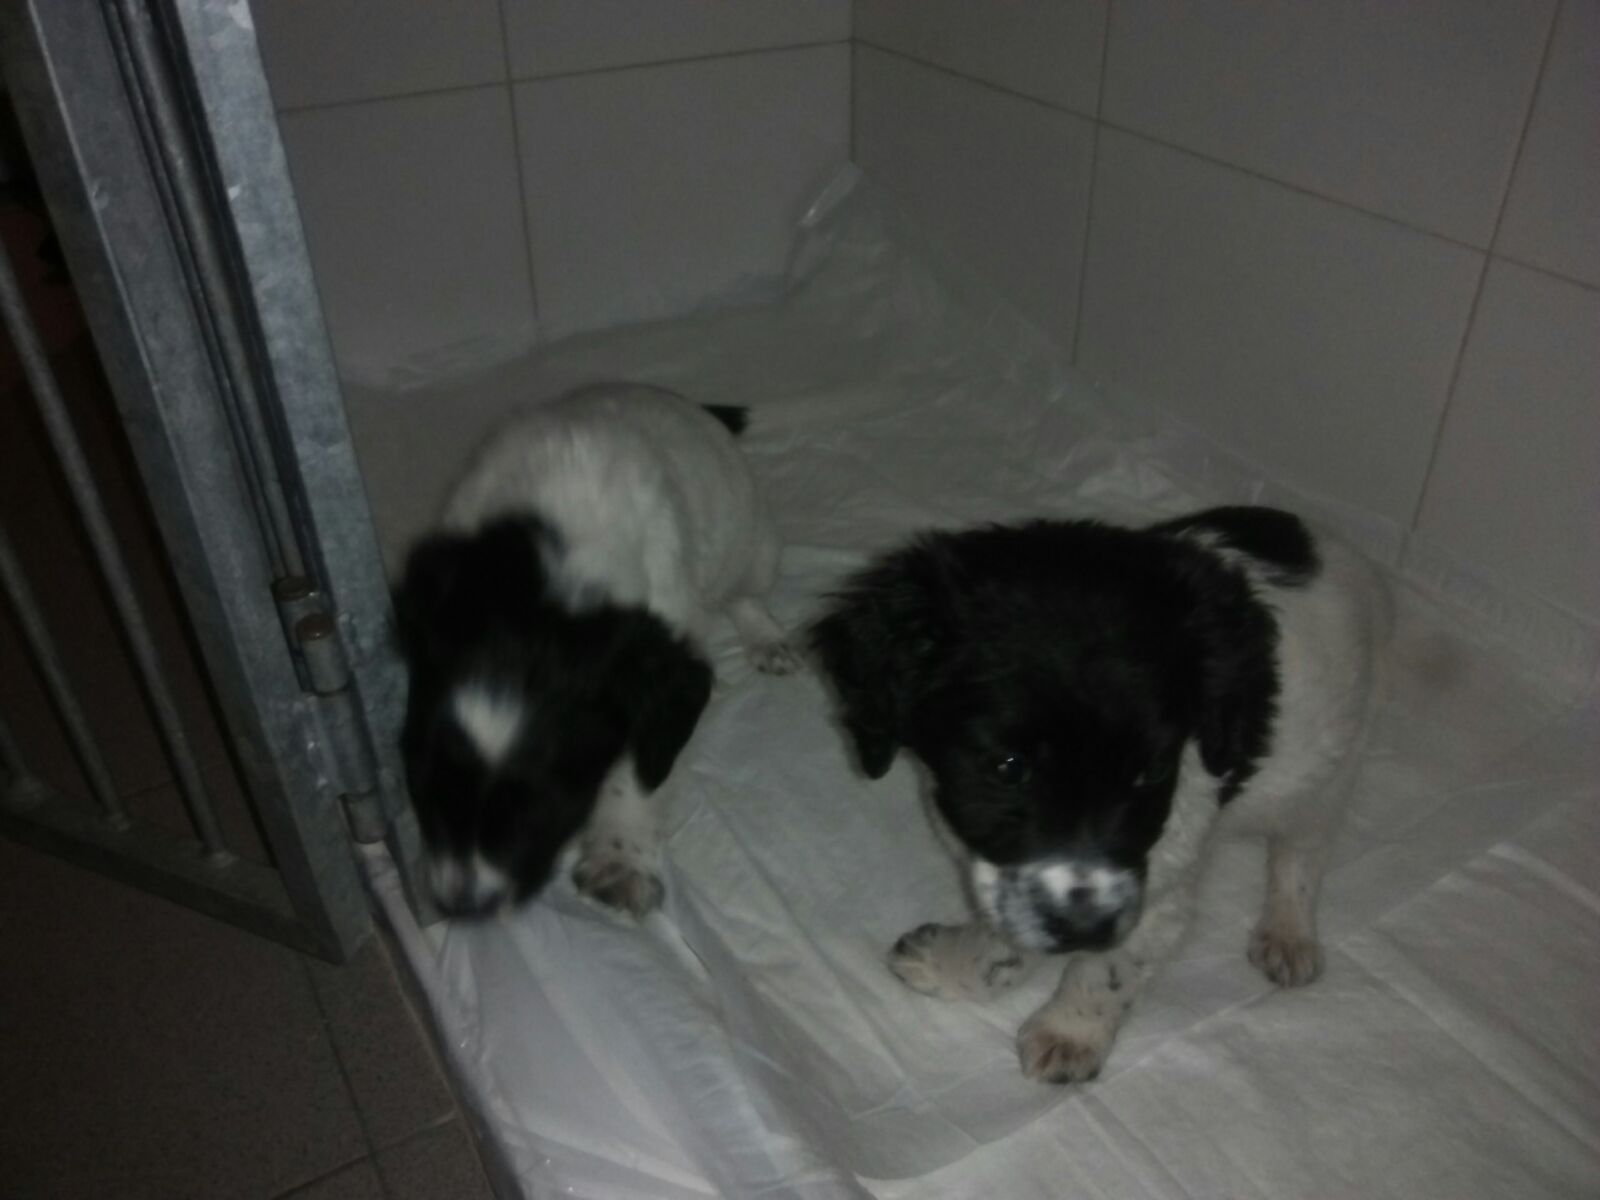 IGNORANCE THAT KILLS: TORN FROM THEIR MOTHER'S CARE AND SENTENCED TO DIE, THELMA AND LOUISE WERE SAVED FROM OIPA ANIMAL GUARDS, BUT THEY STILL NEED HELP.